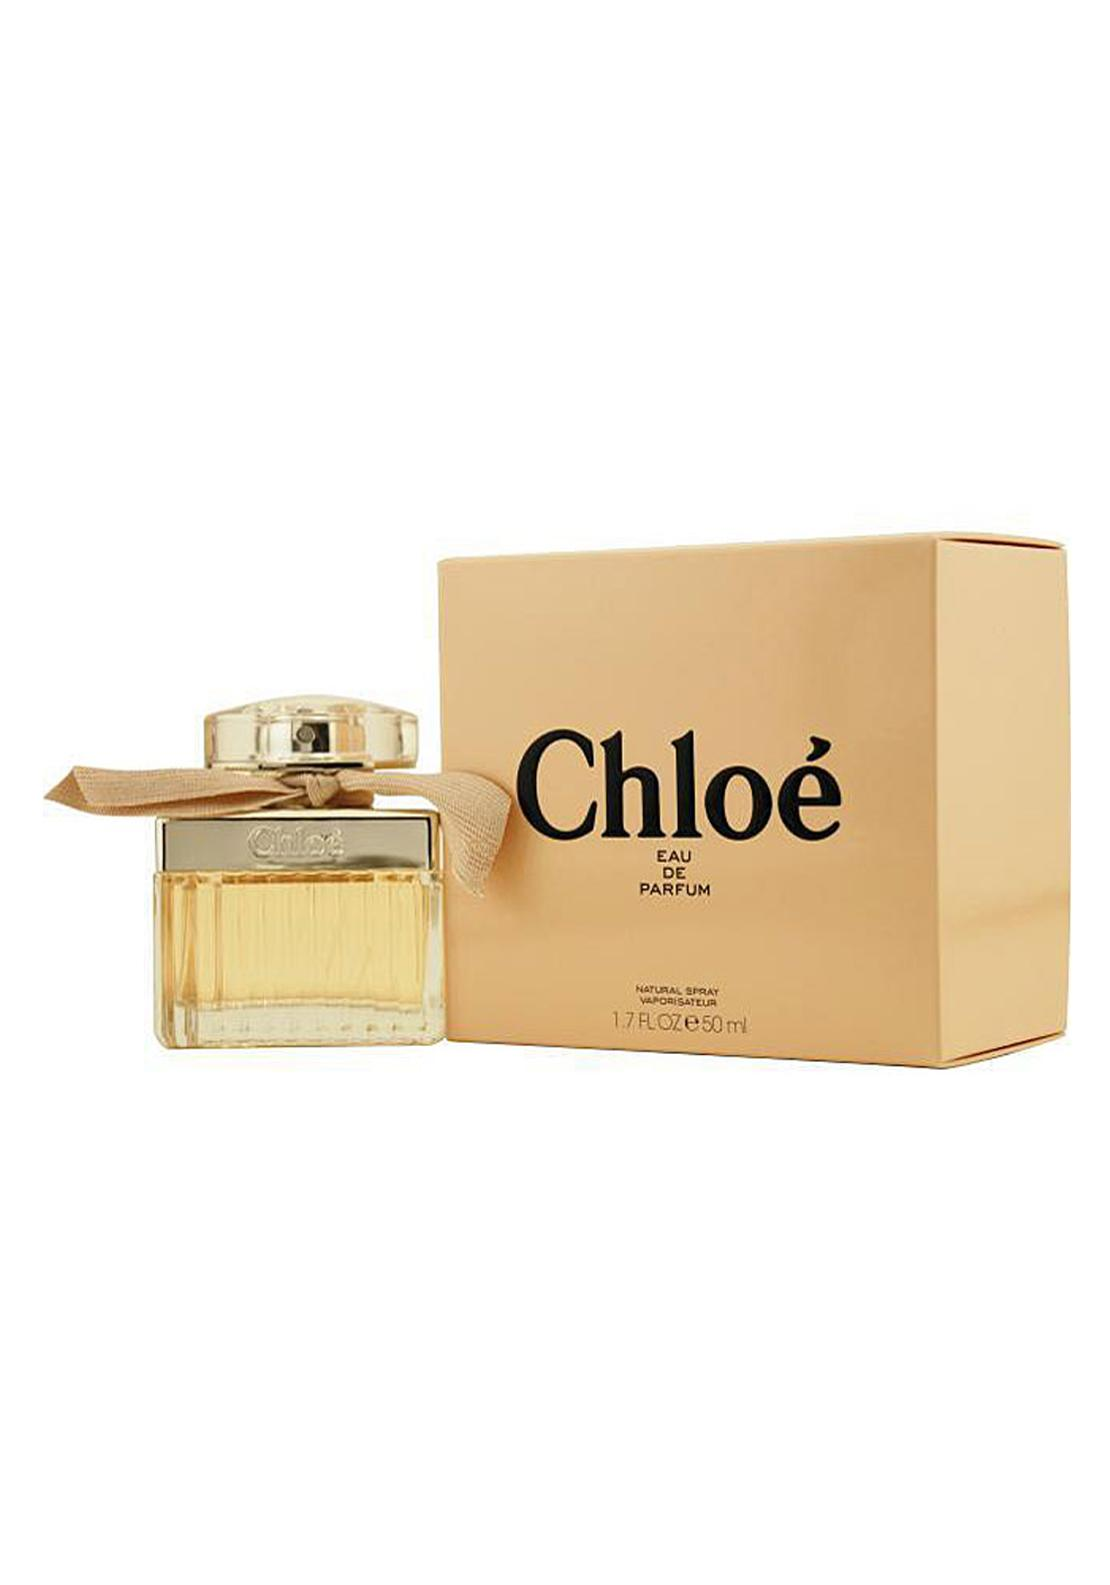 Chloé Eau de Parfum For Women, 30ml